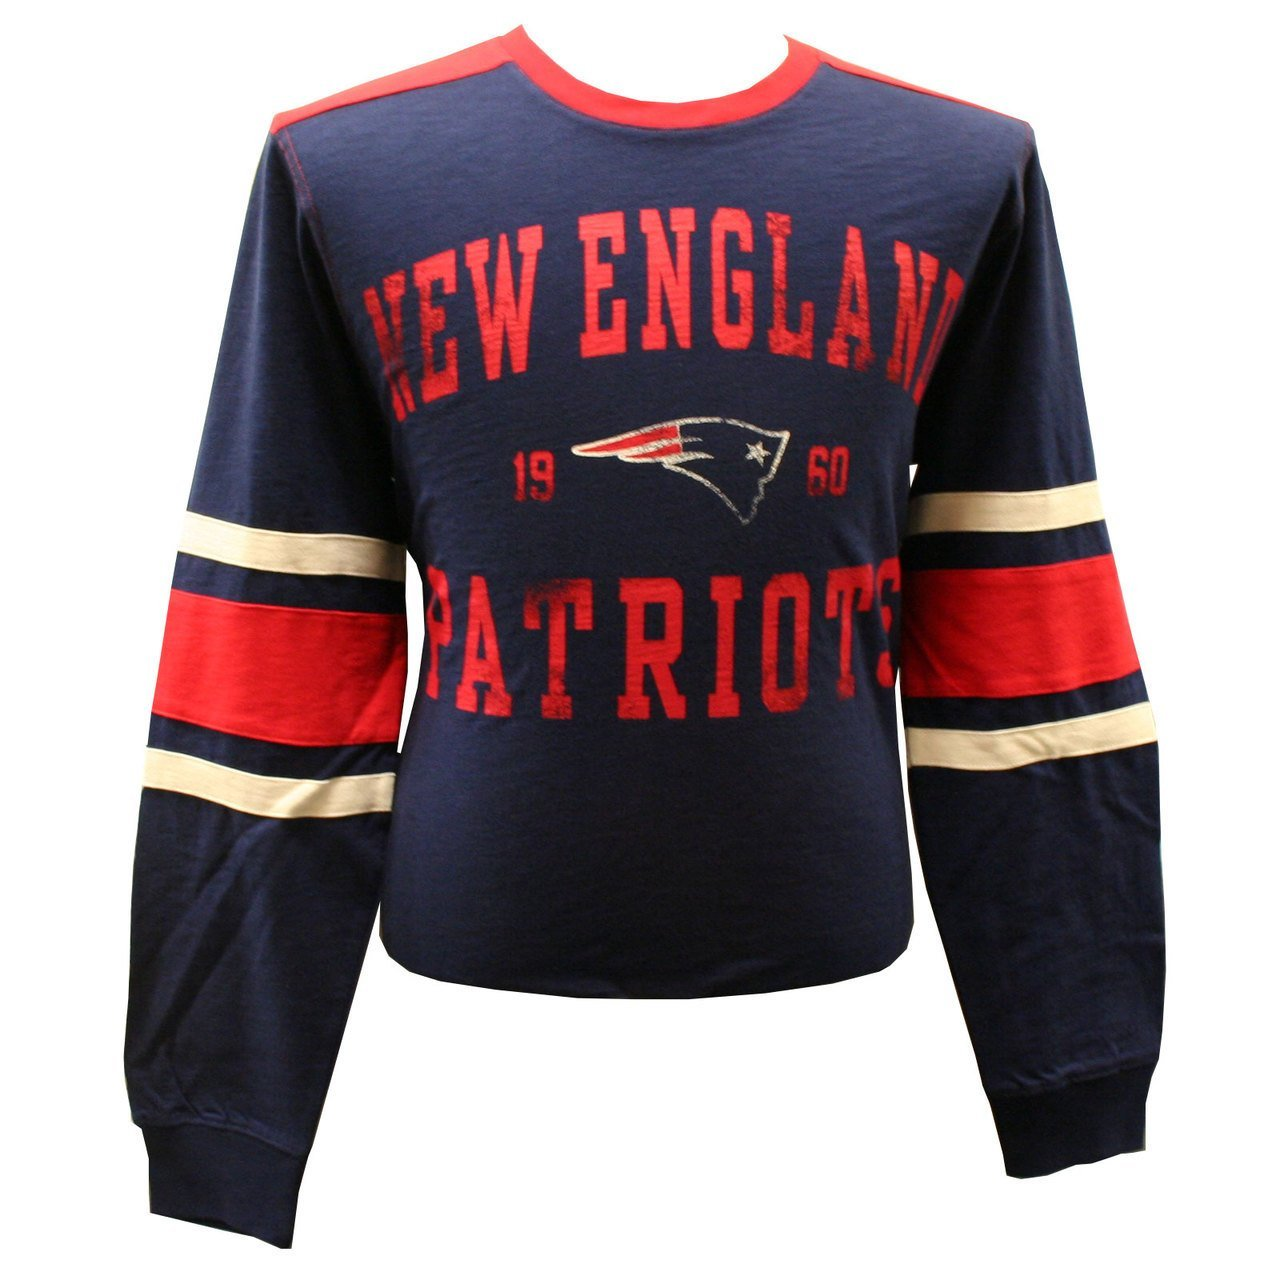 Cheap We The Patriots Shirt, find We The Patriots Shirt deals on  hot sale